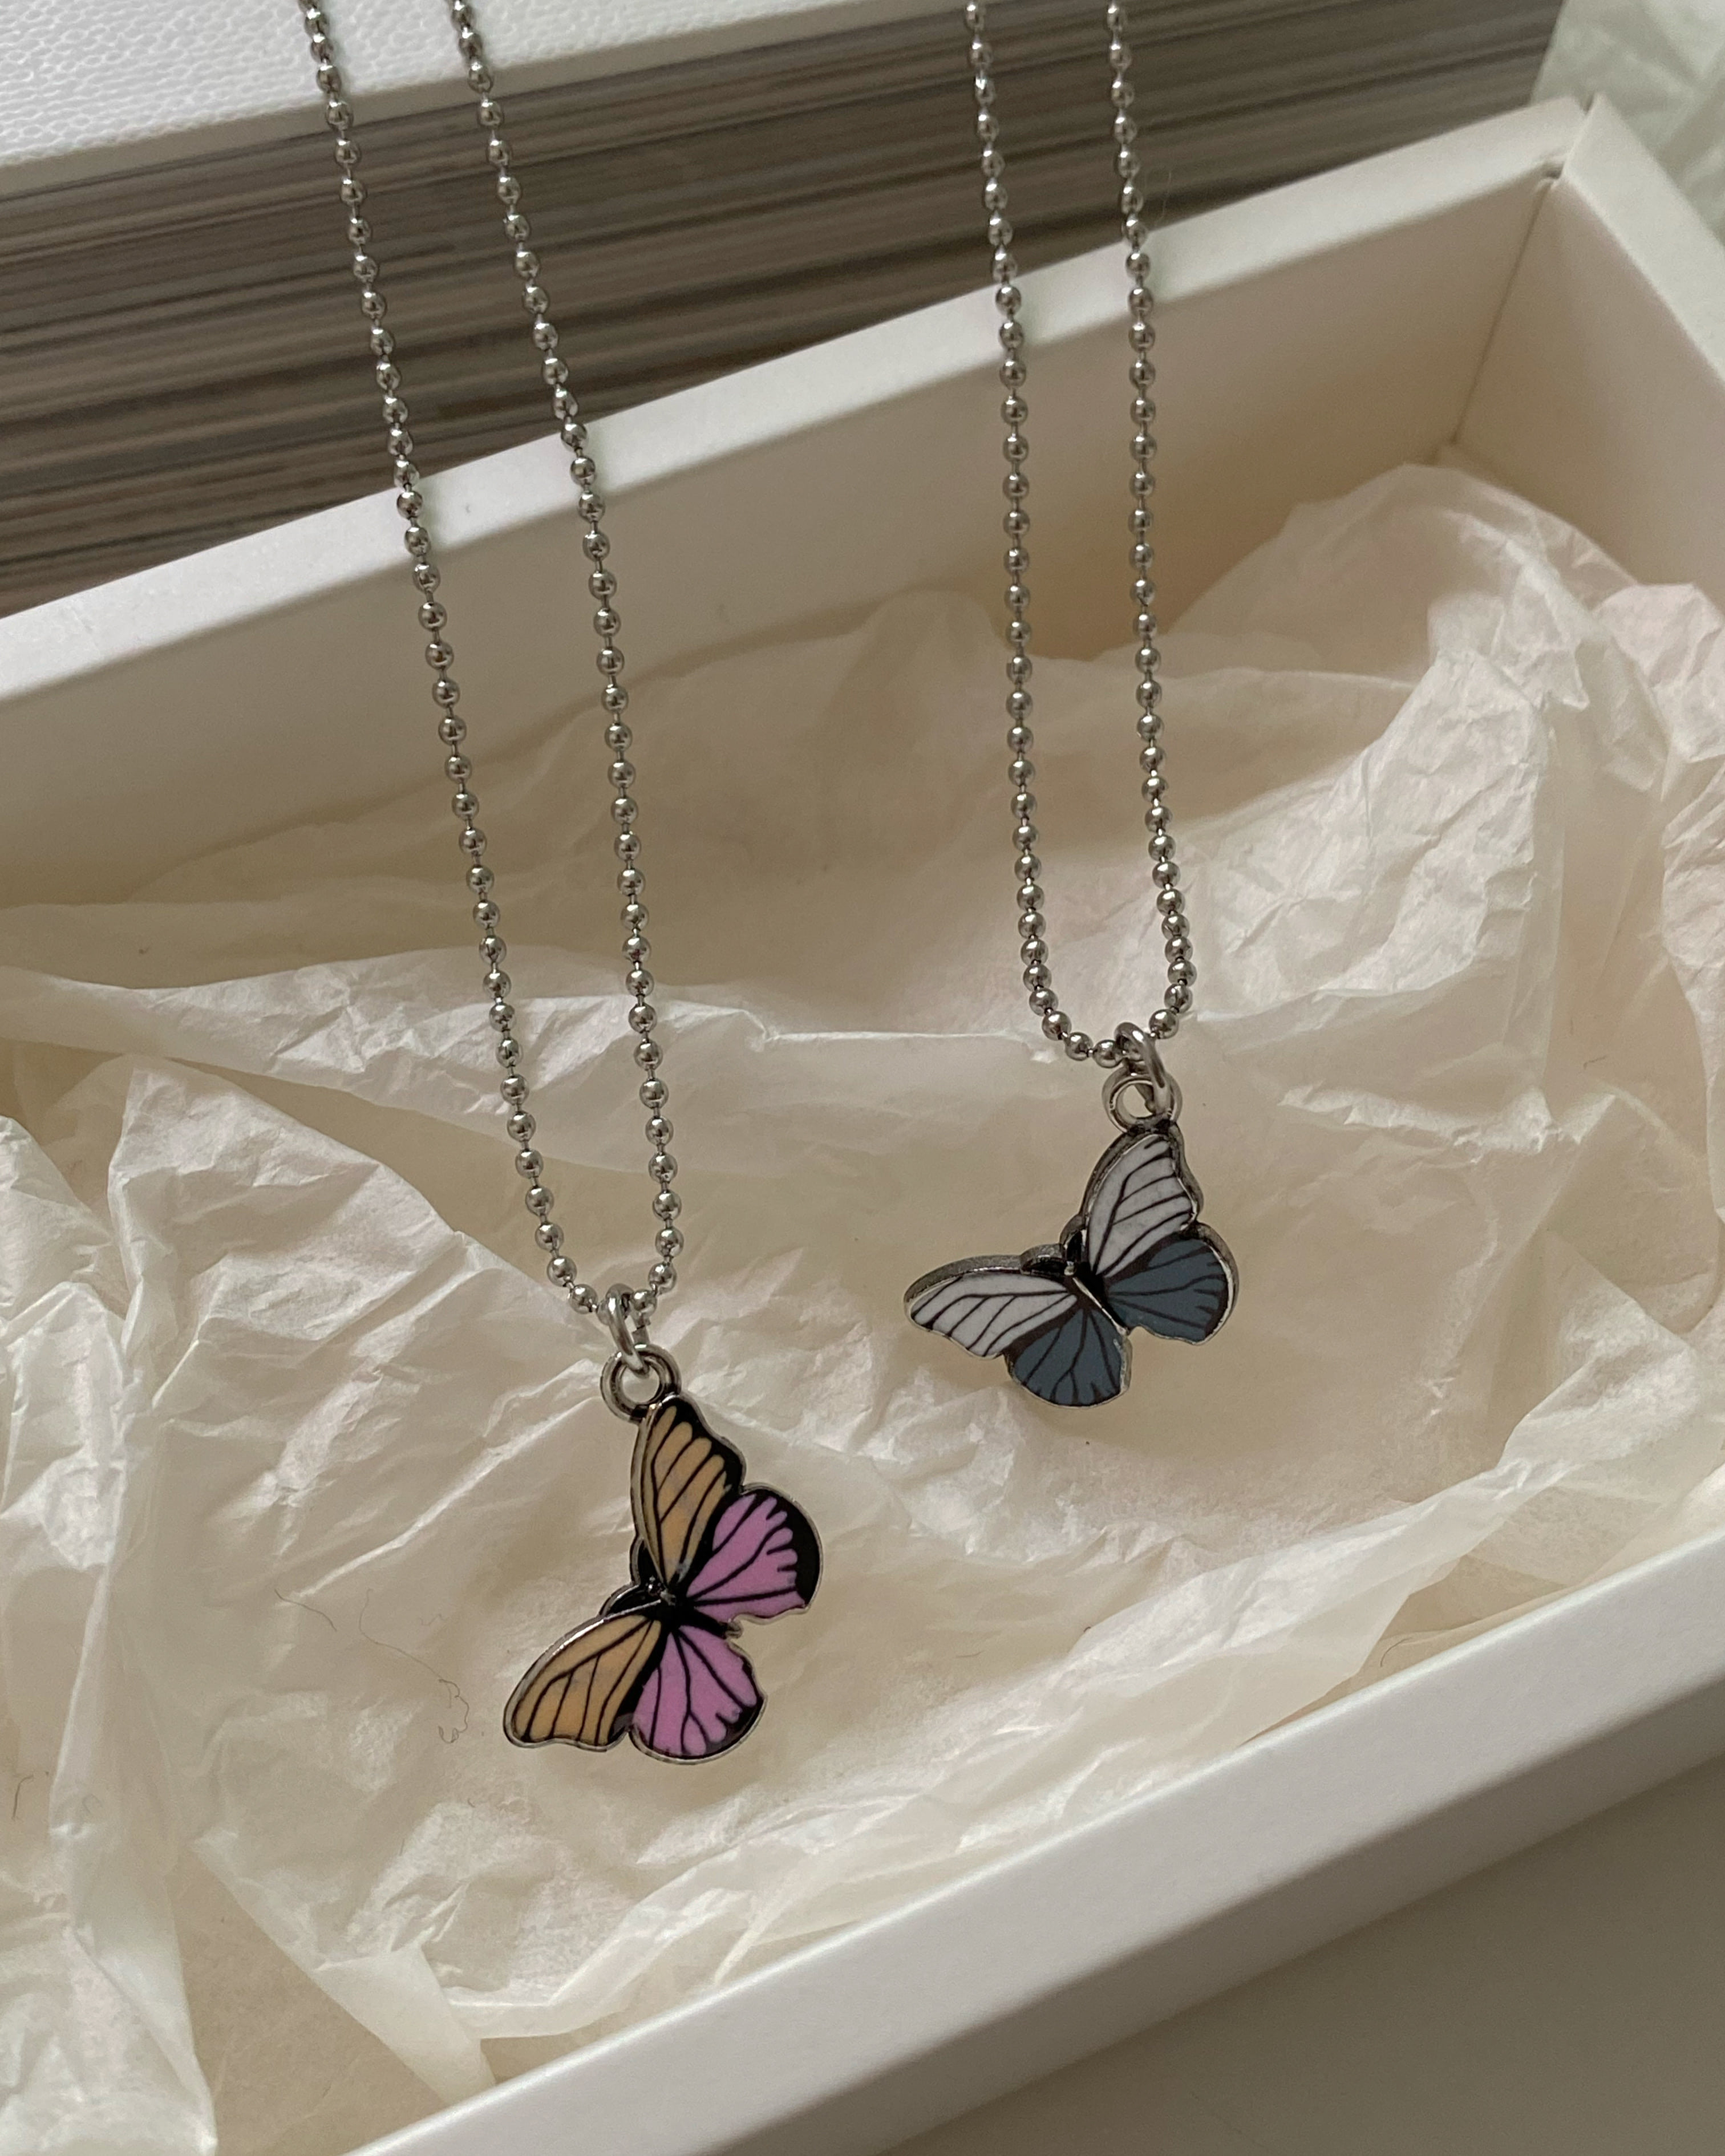 [써지컬스틸] gradation butterfly necklace (2 color)